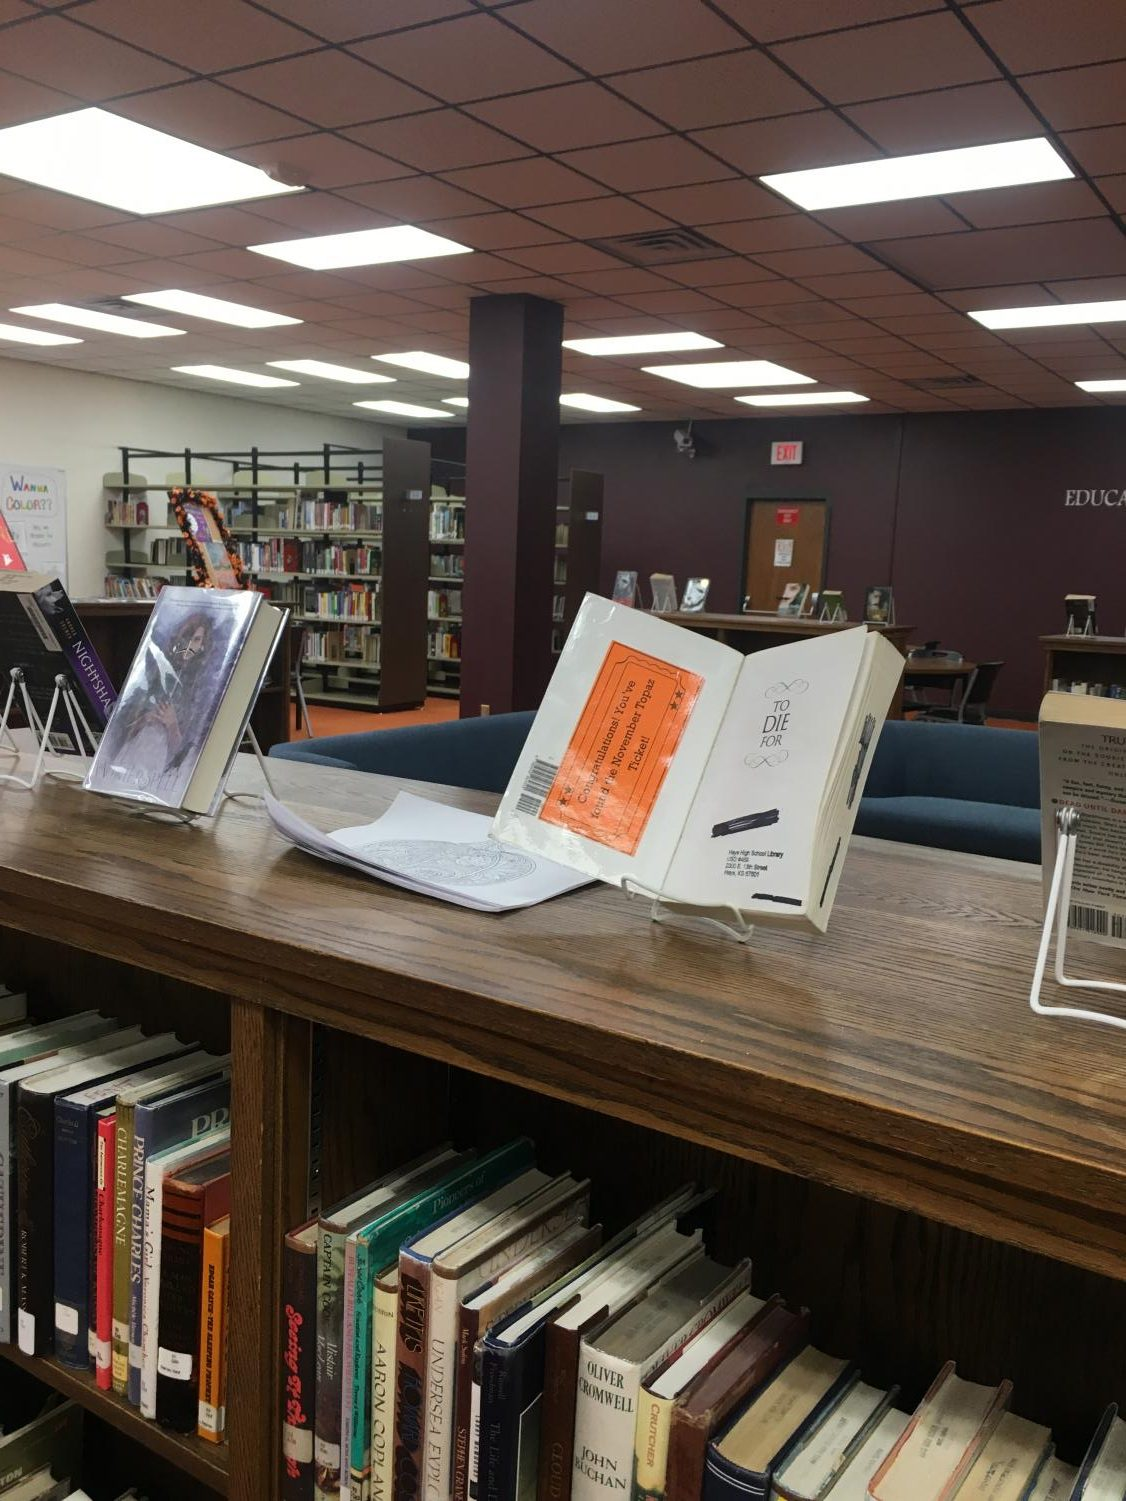 The hidden tickets in the library are new to the school this year thanks to librarian Erin Holder. Each month, new winner will be announced.